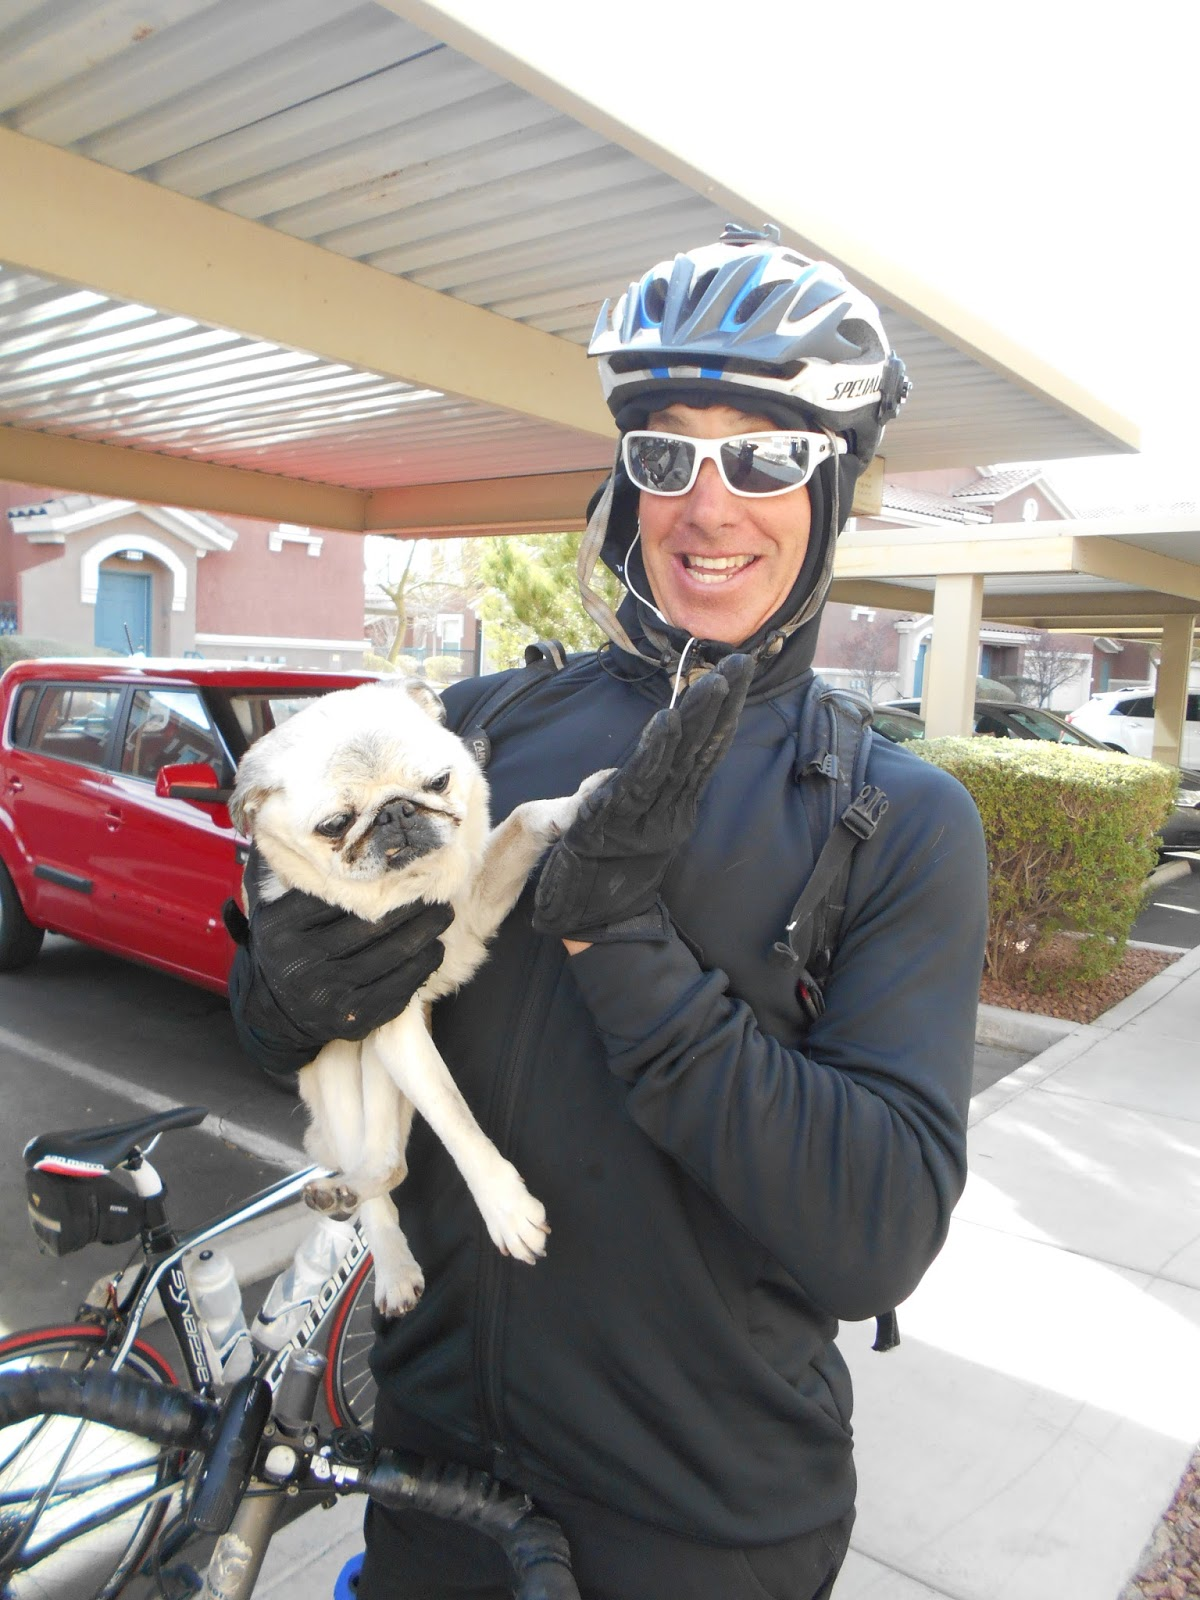 Bicycle Stories: Jared and Pugsy